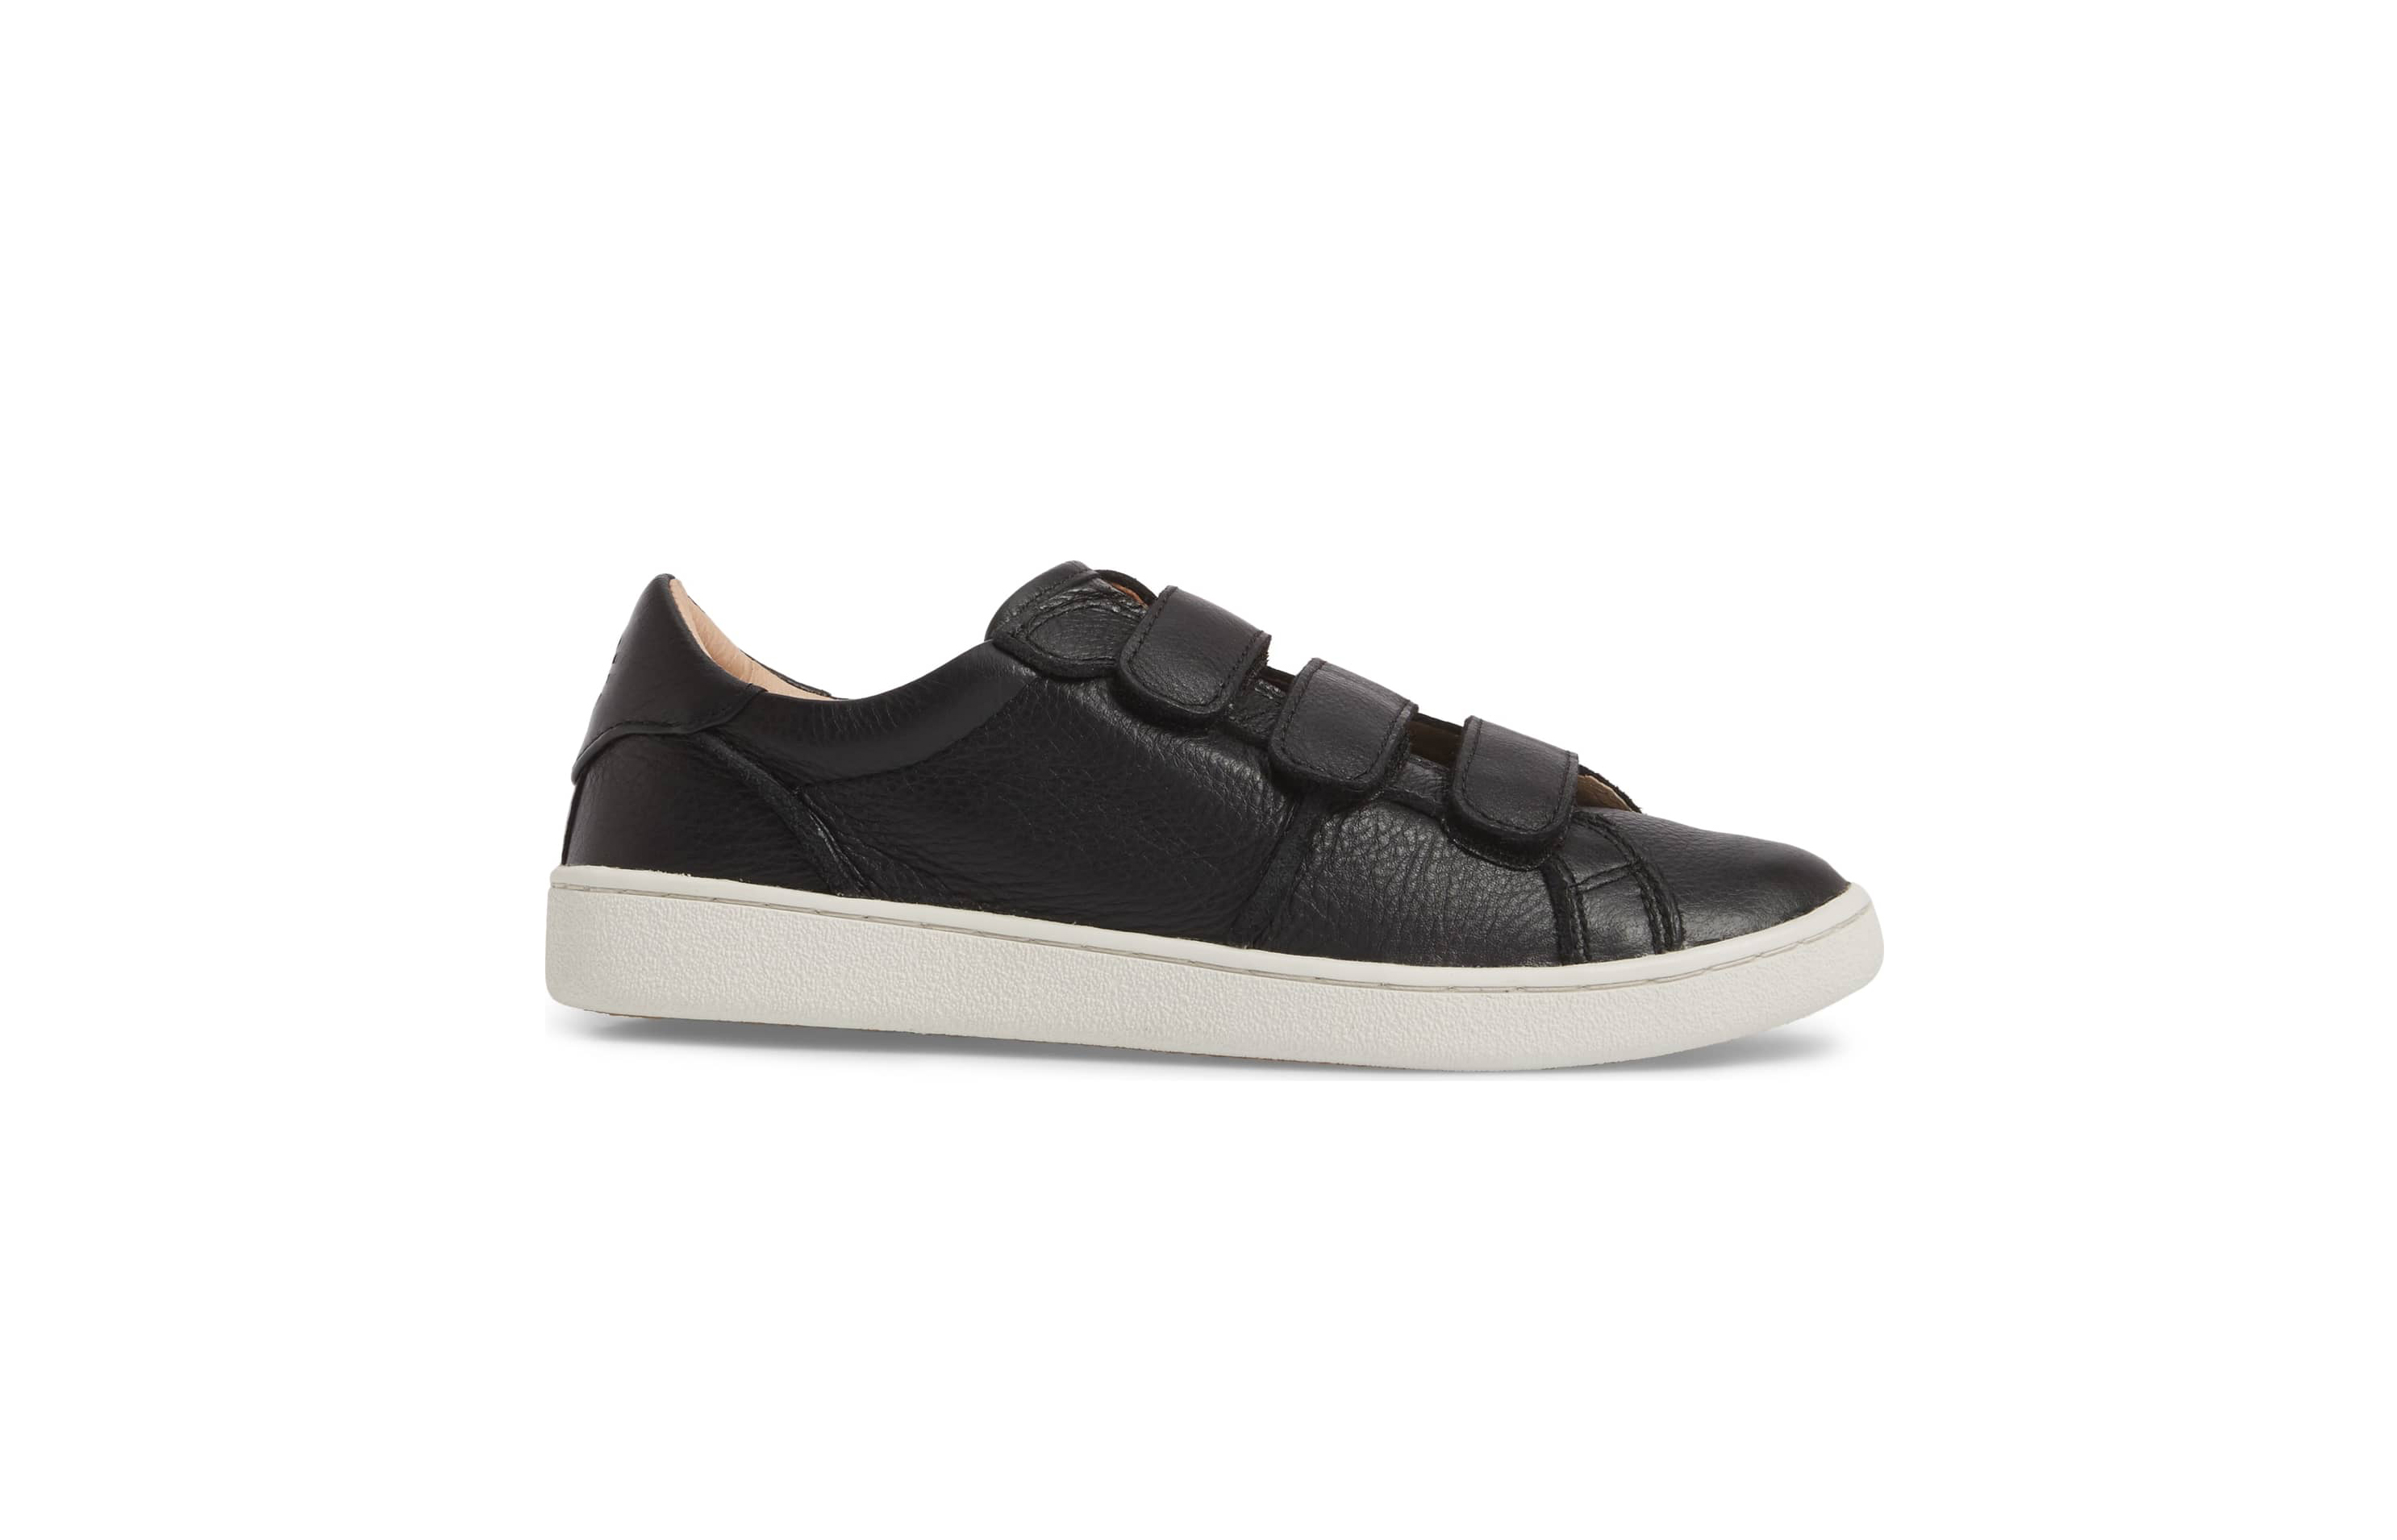 Ugg Velcro Sneakers on Sale at Nordstrom